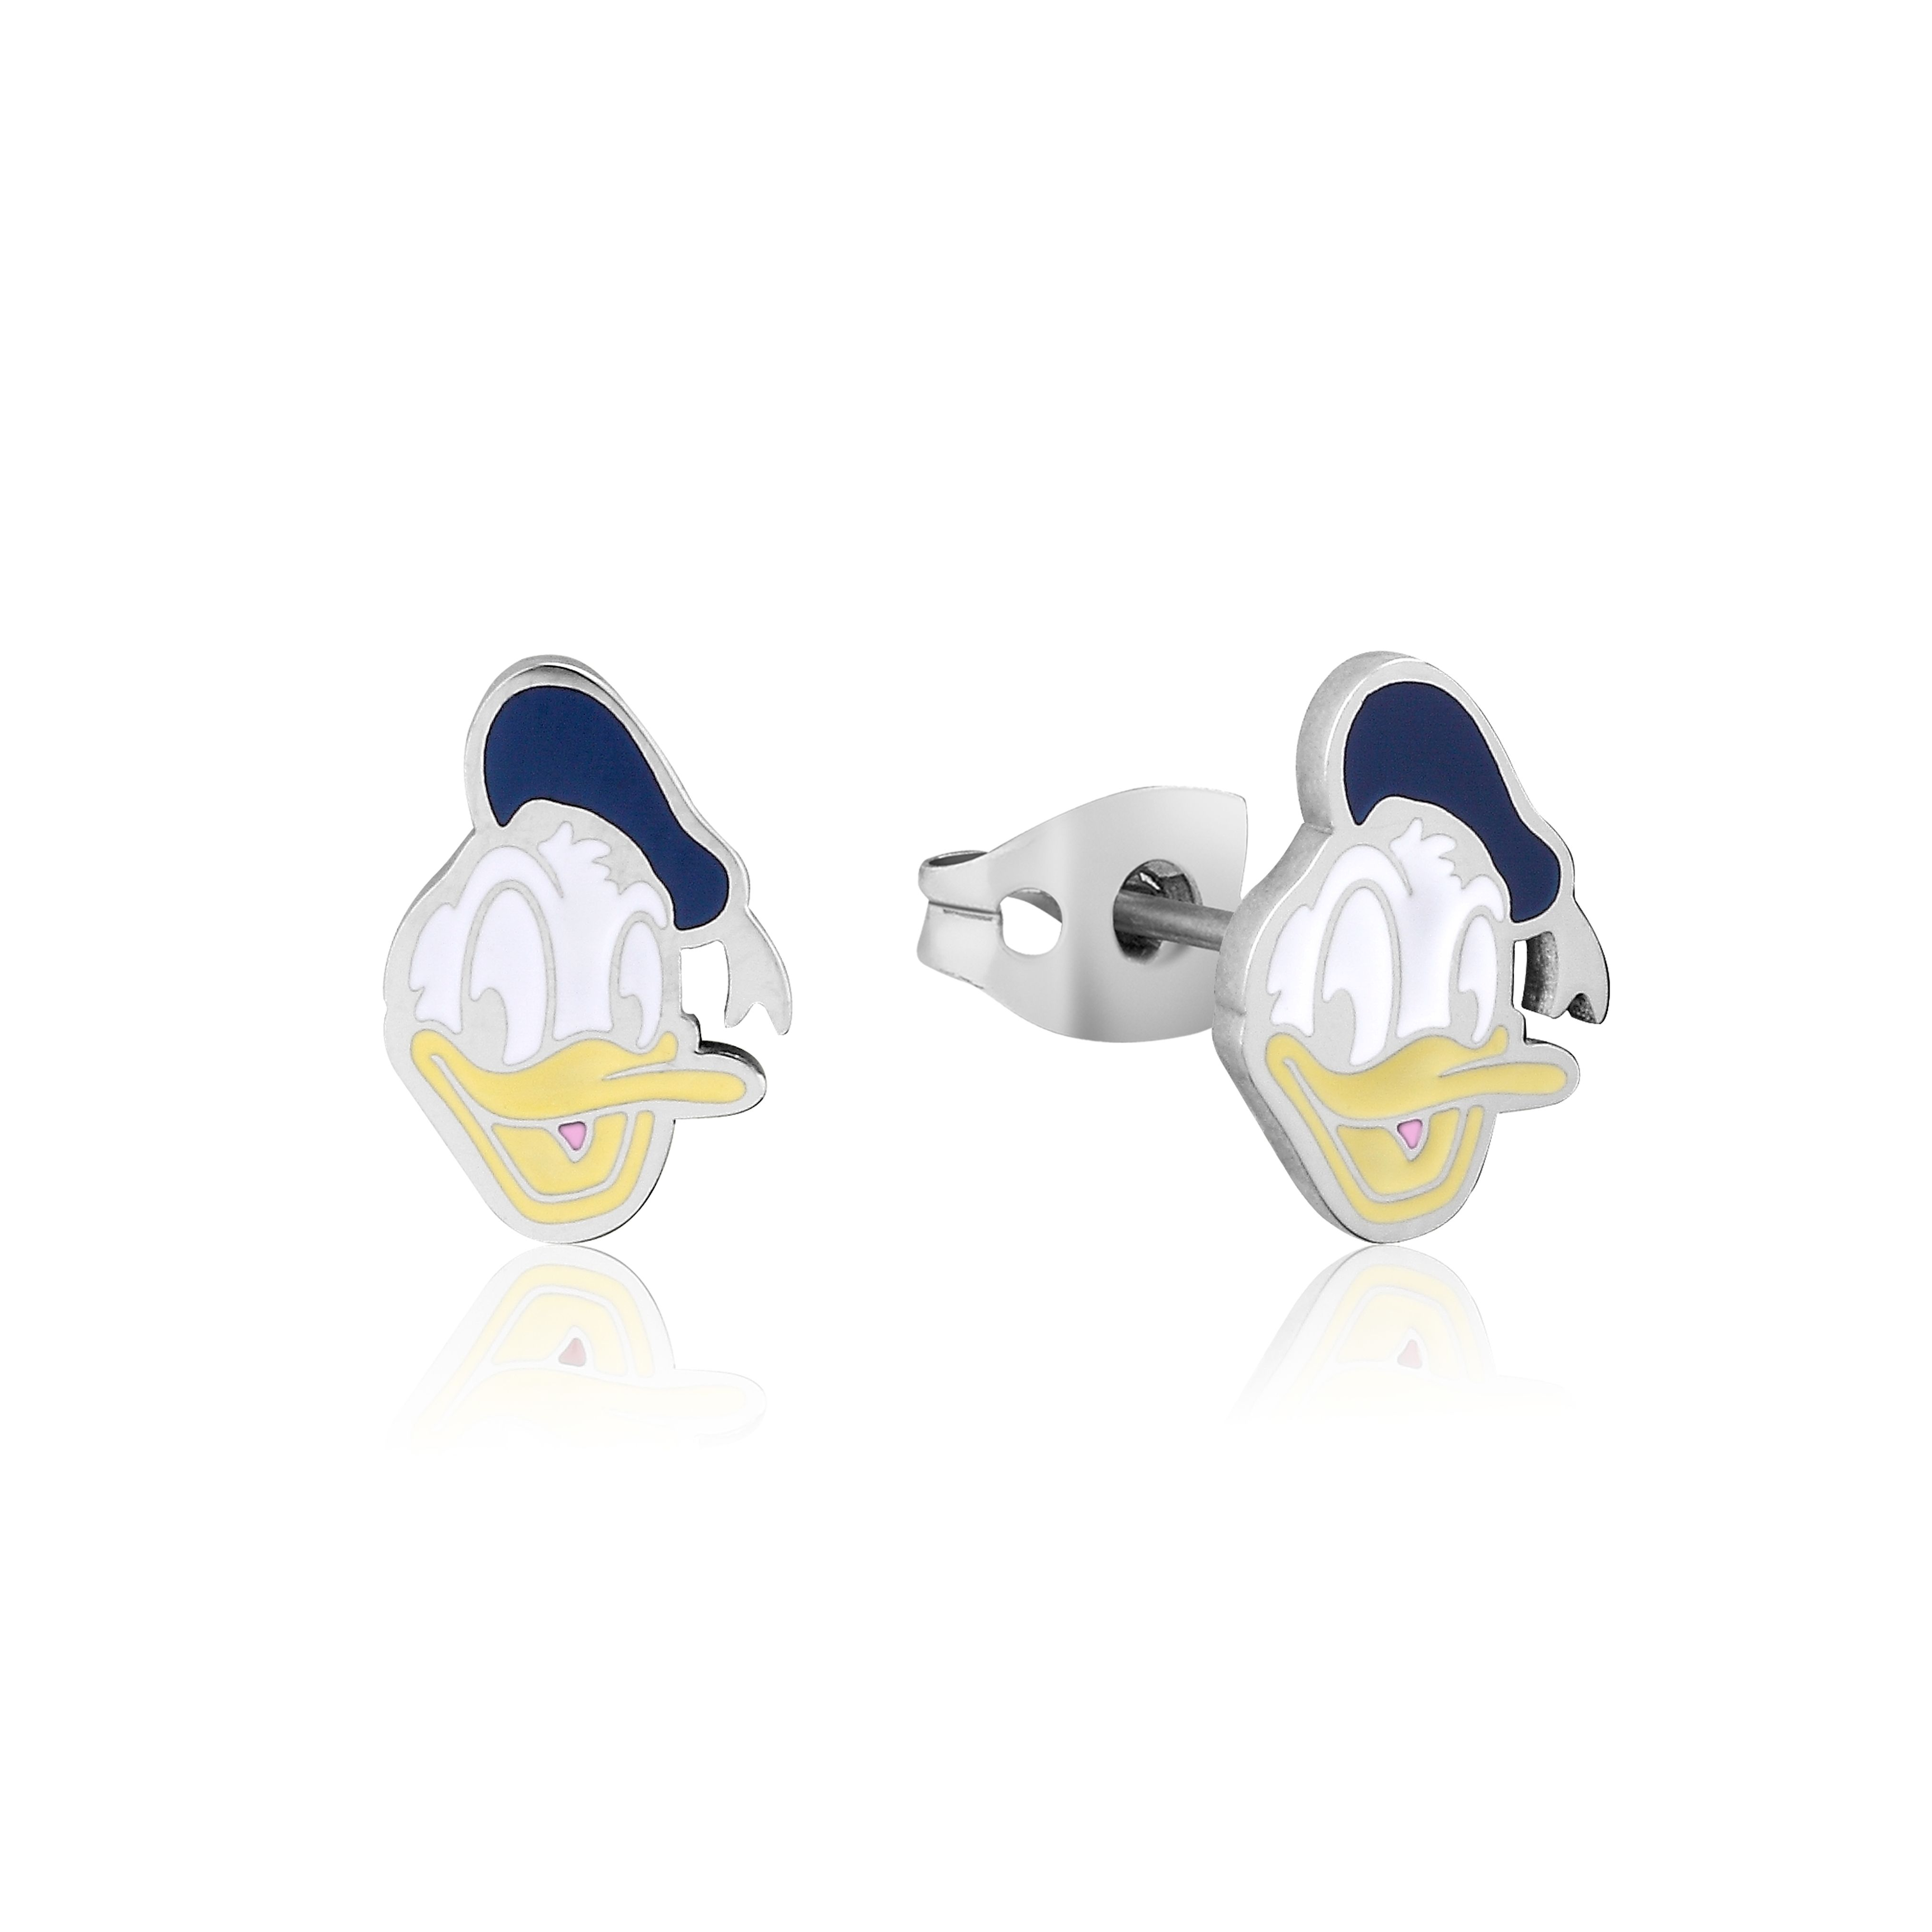 DISNEY Stainless Steel 11mm Animated Donald Duck Studs Earrings